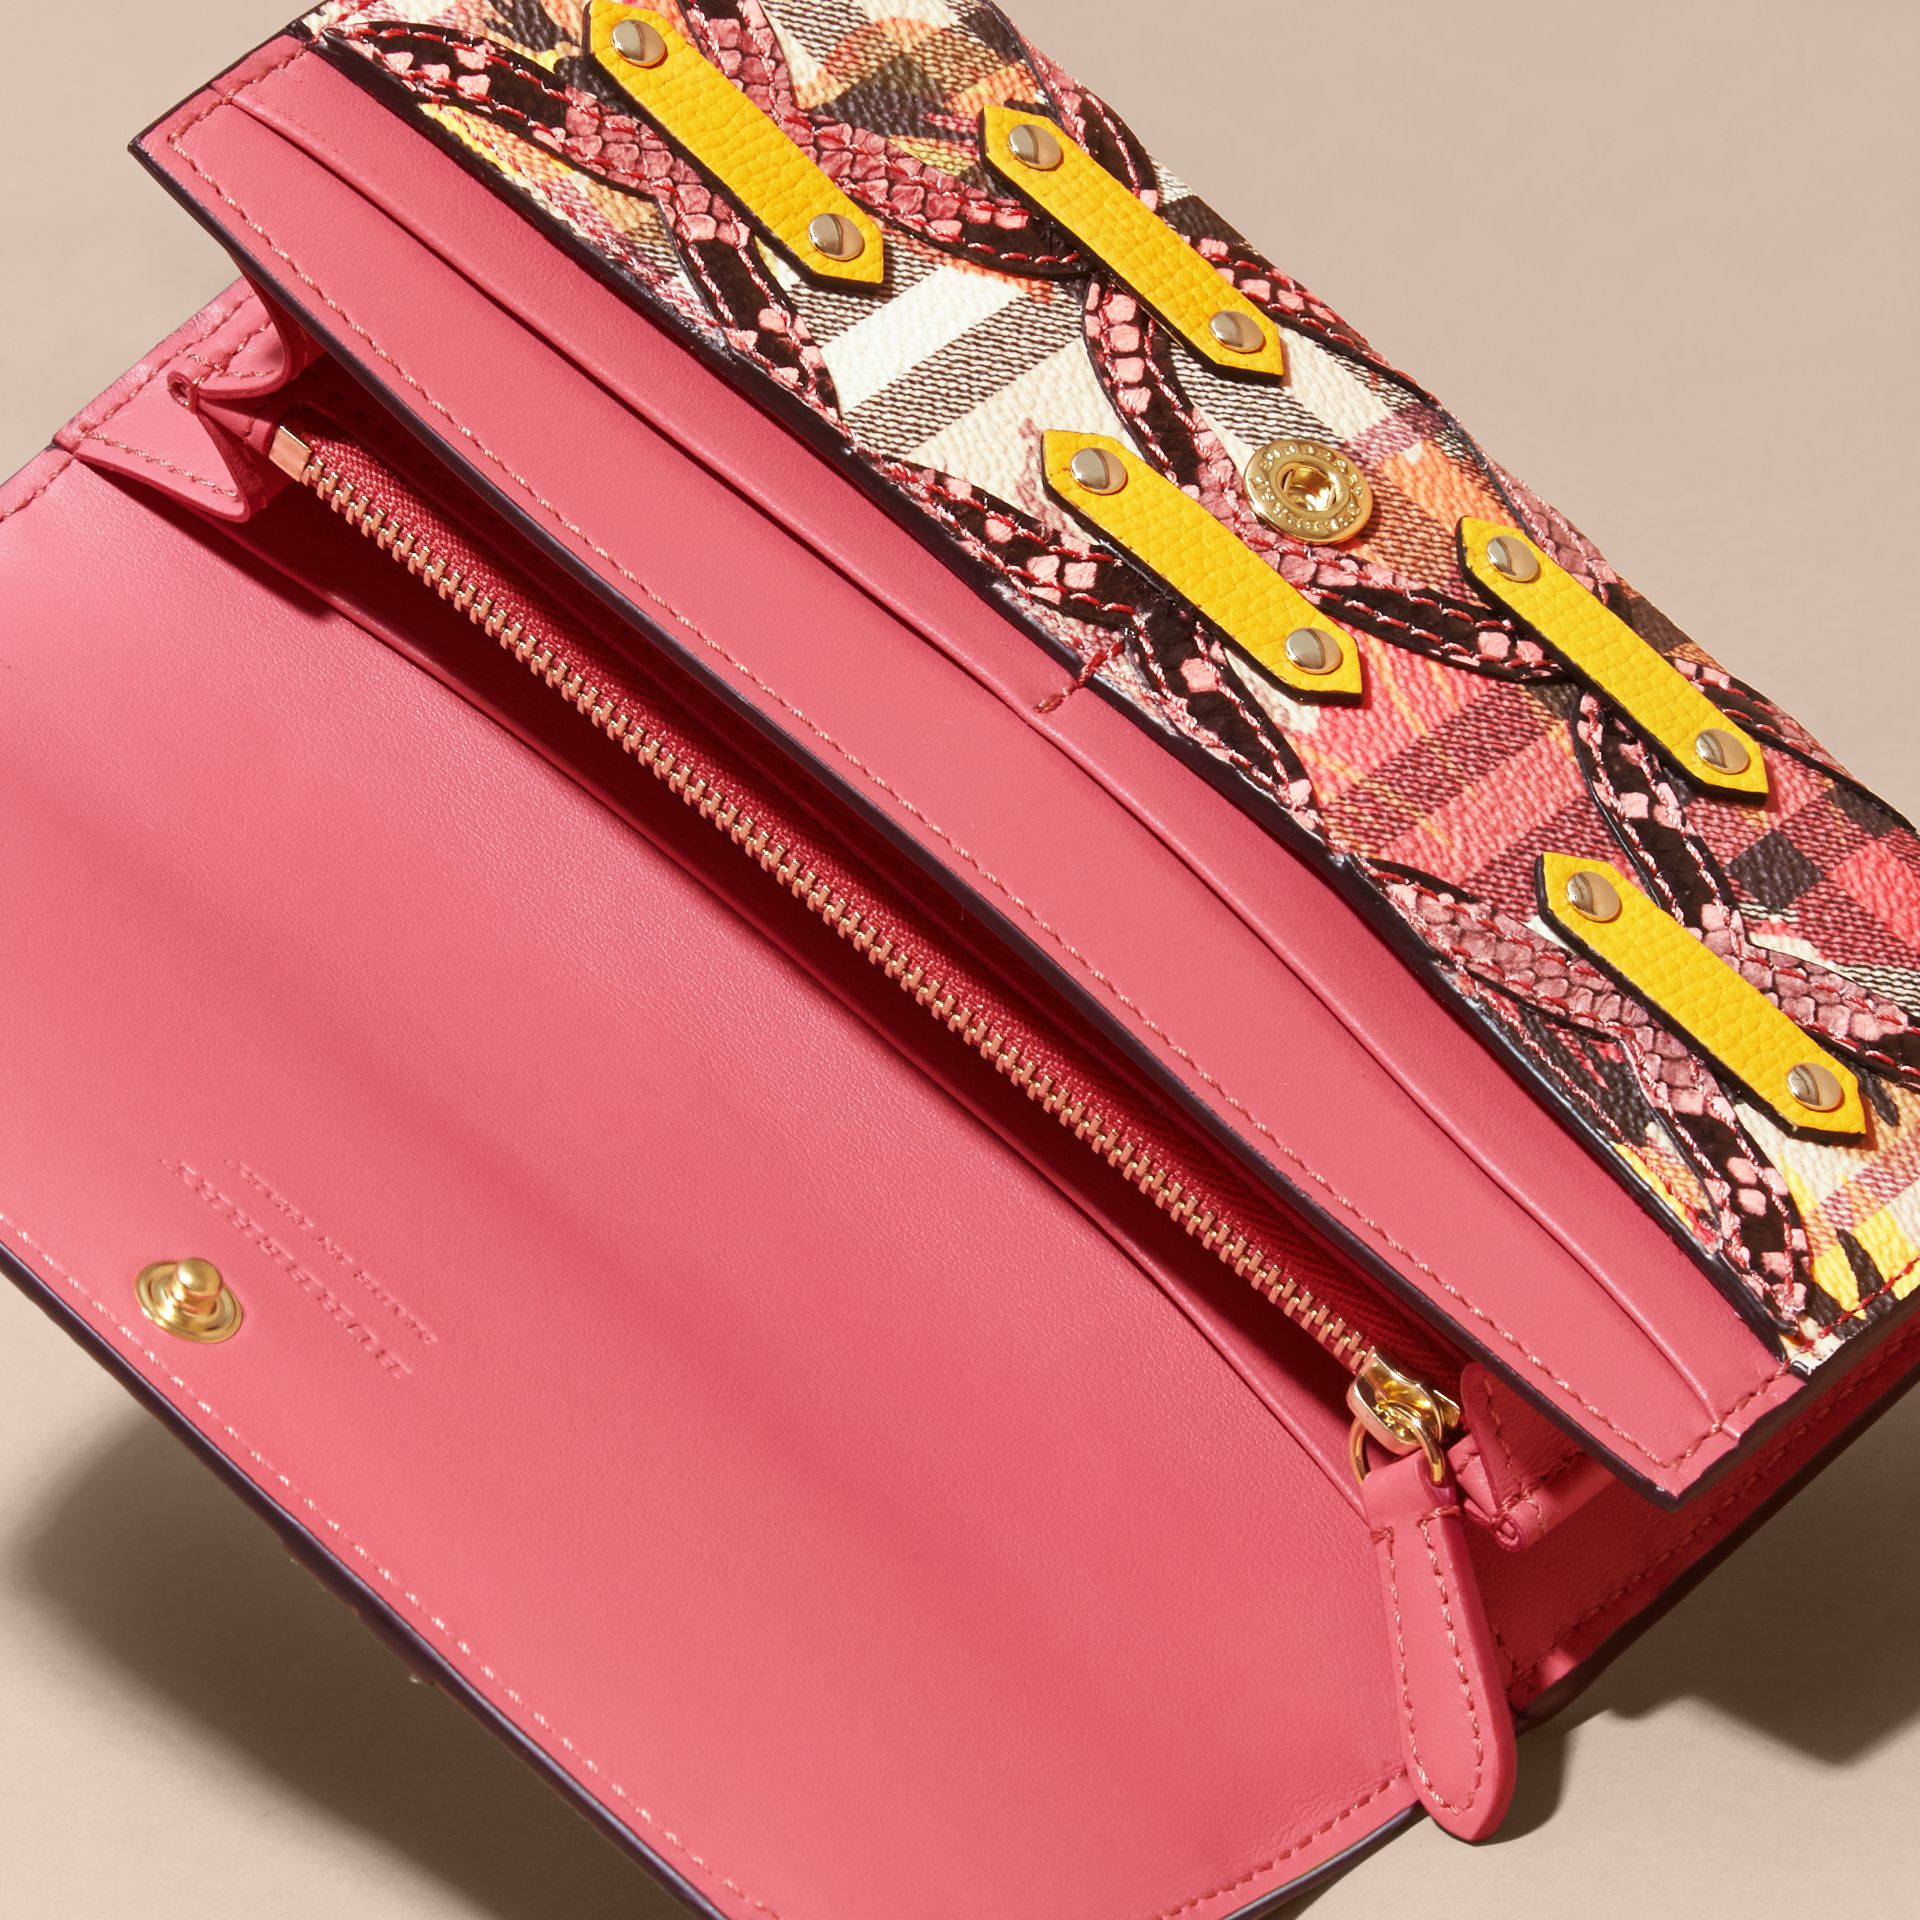 Snakeskin Appliqué Peony Rose Print Haymarket Check Continental Wallet in Larch Yellow - gallery image 5